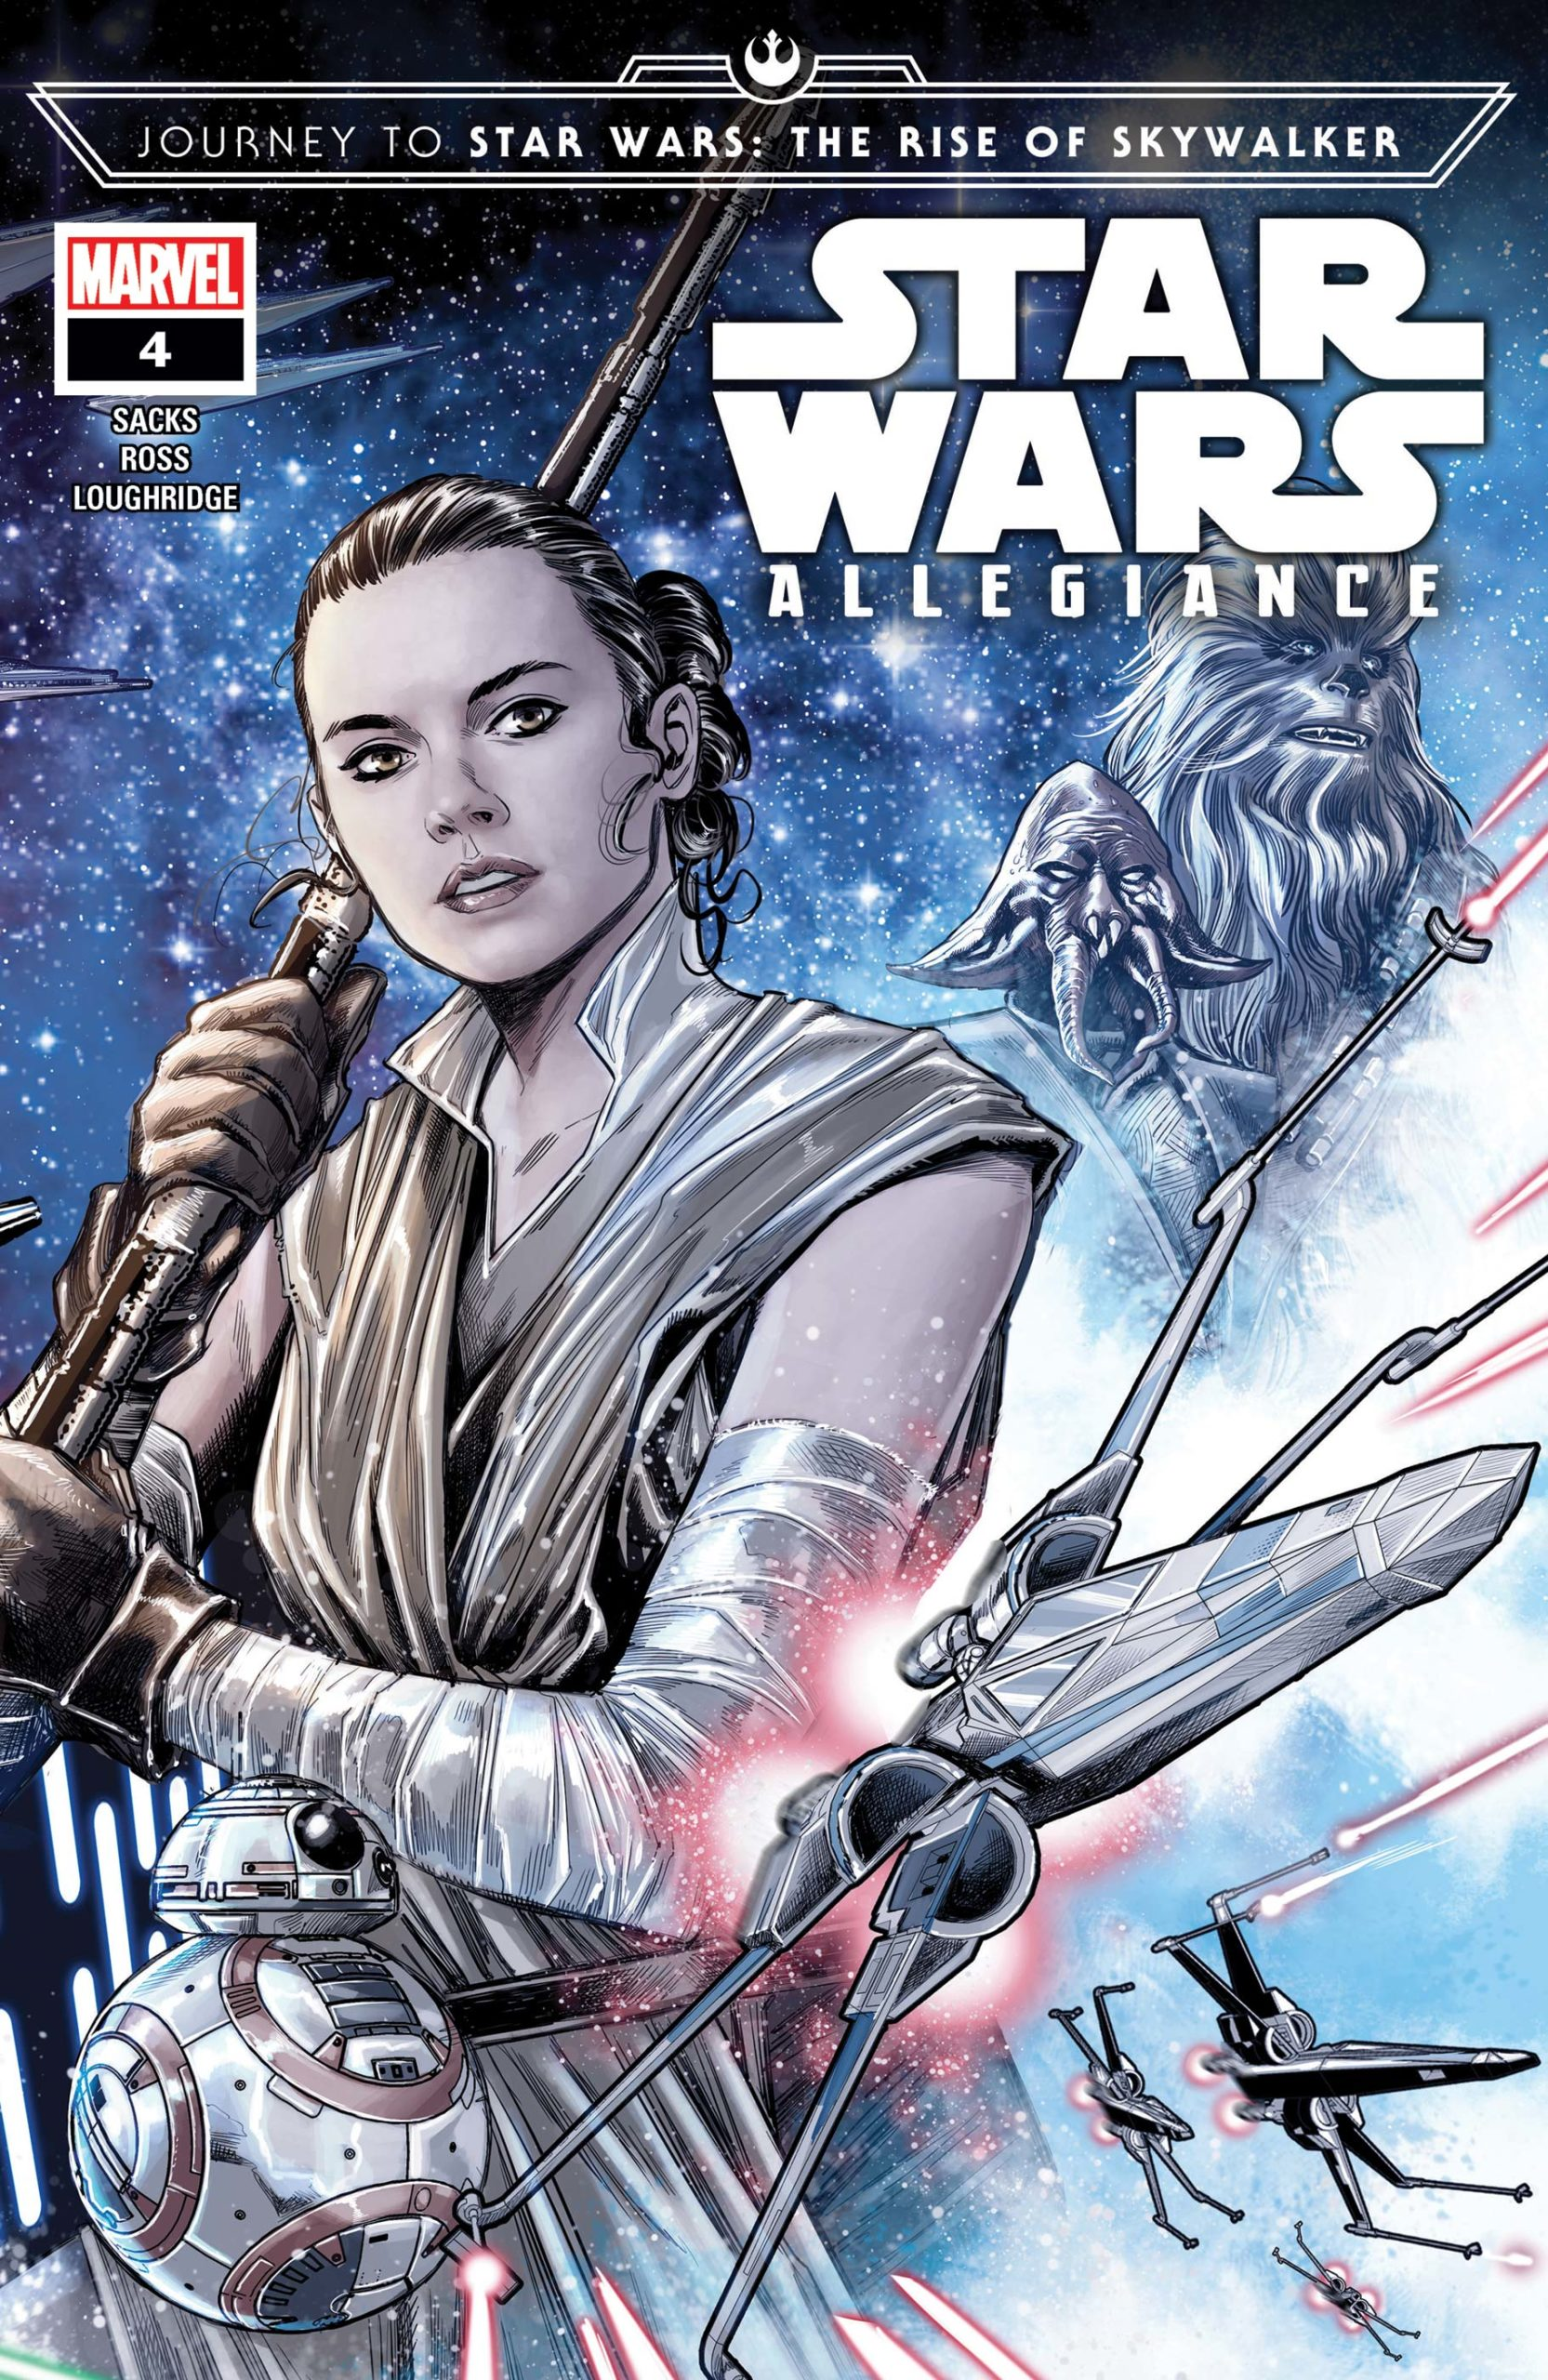 JOURNEY TO STAR WARS: THE RISE OF SKYWALKER – ALLEGIANCE (MS 4)